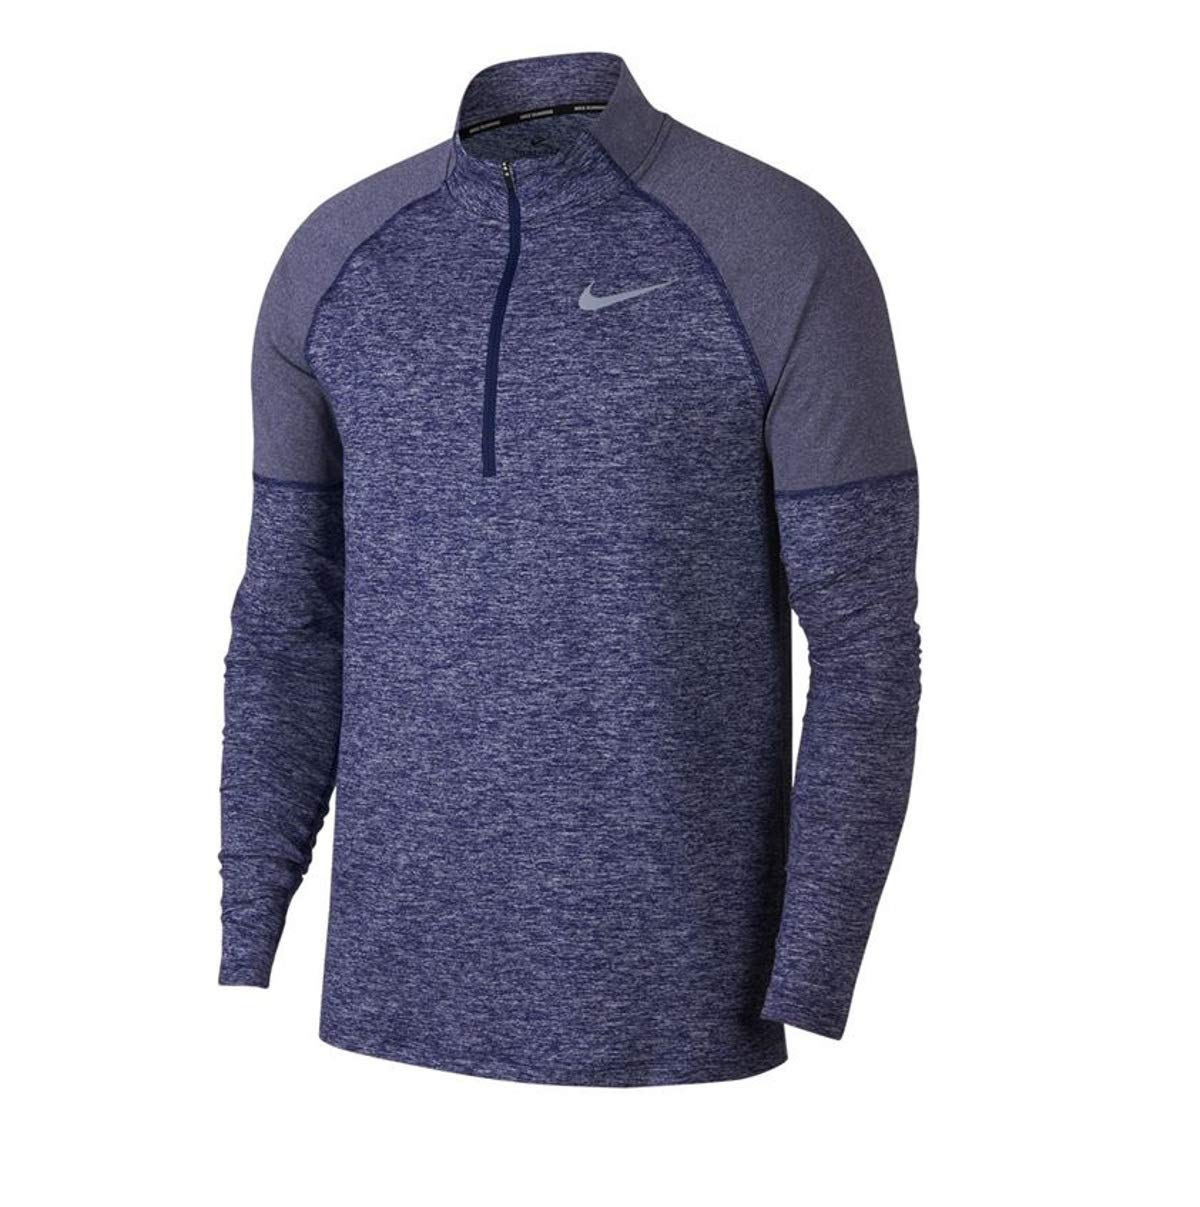 Nike Men's Element Half Zip Top (Small, Obsidian) by Nike (Image #1)